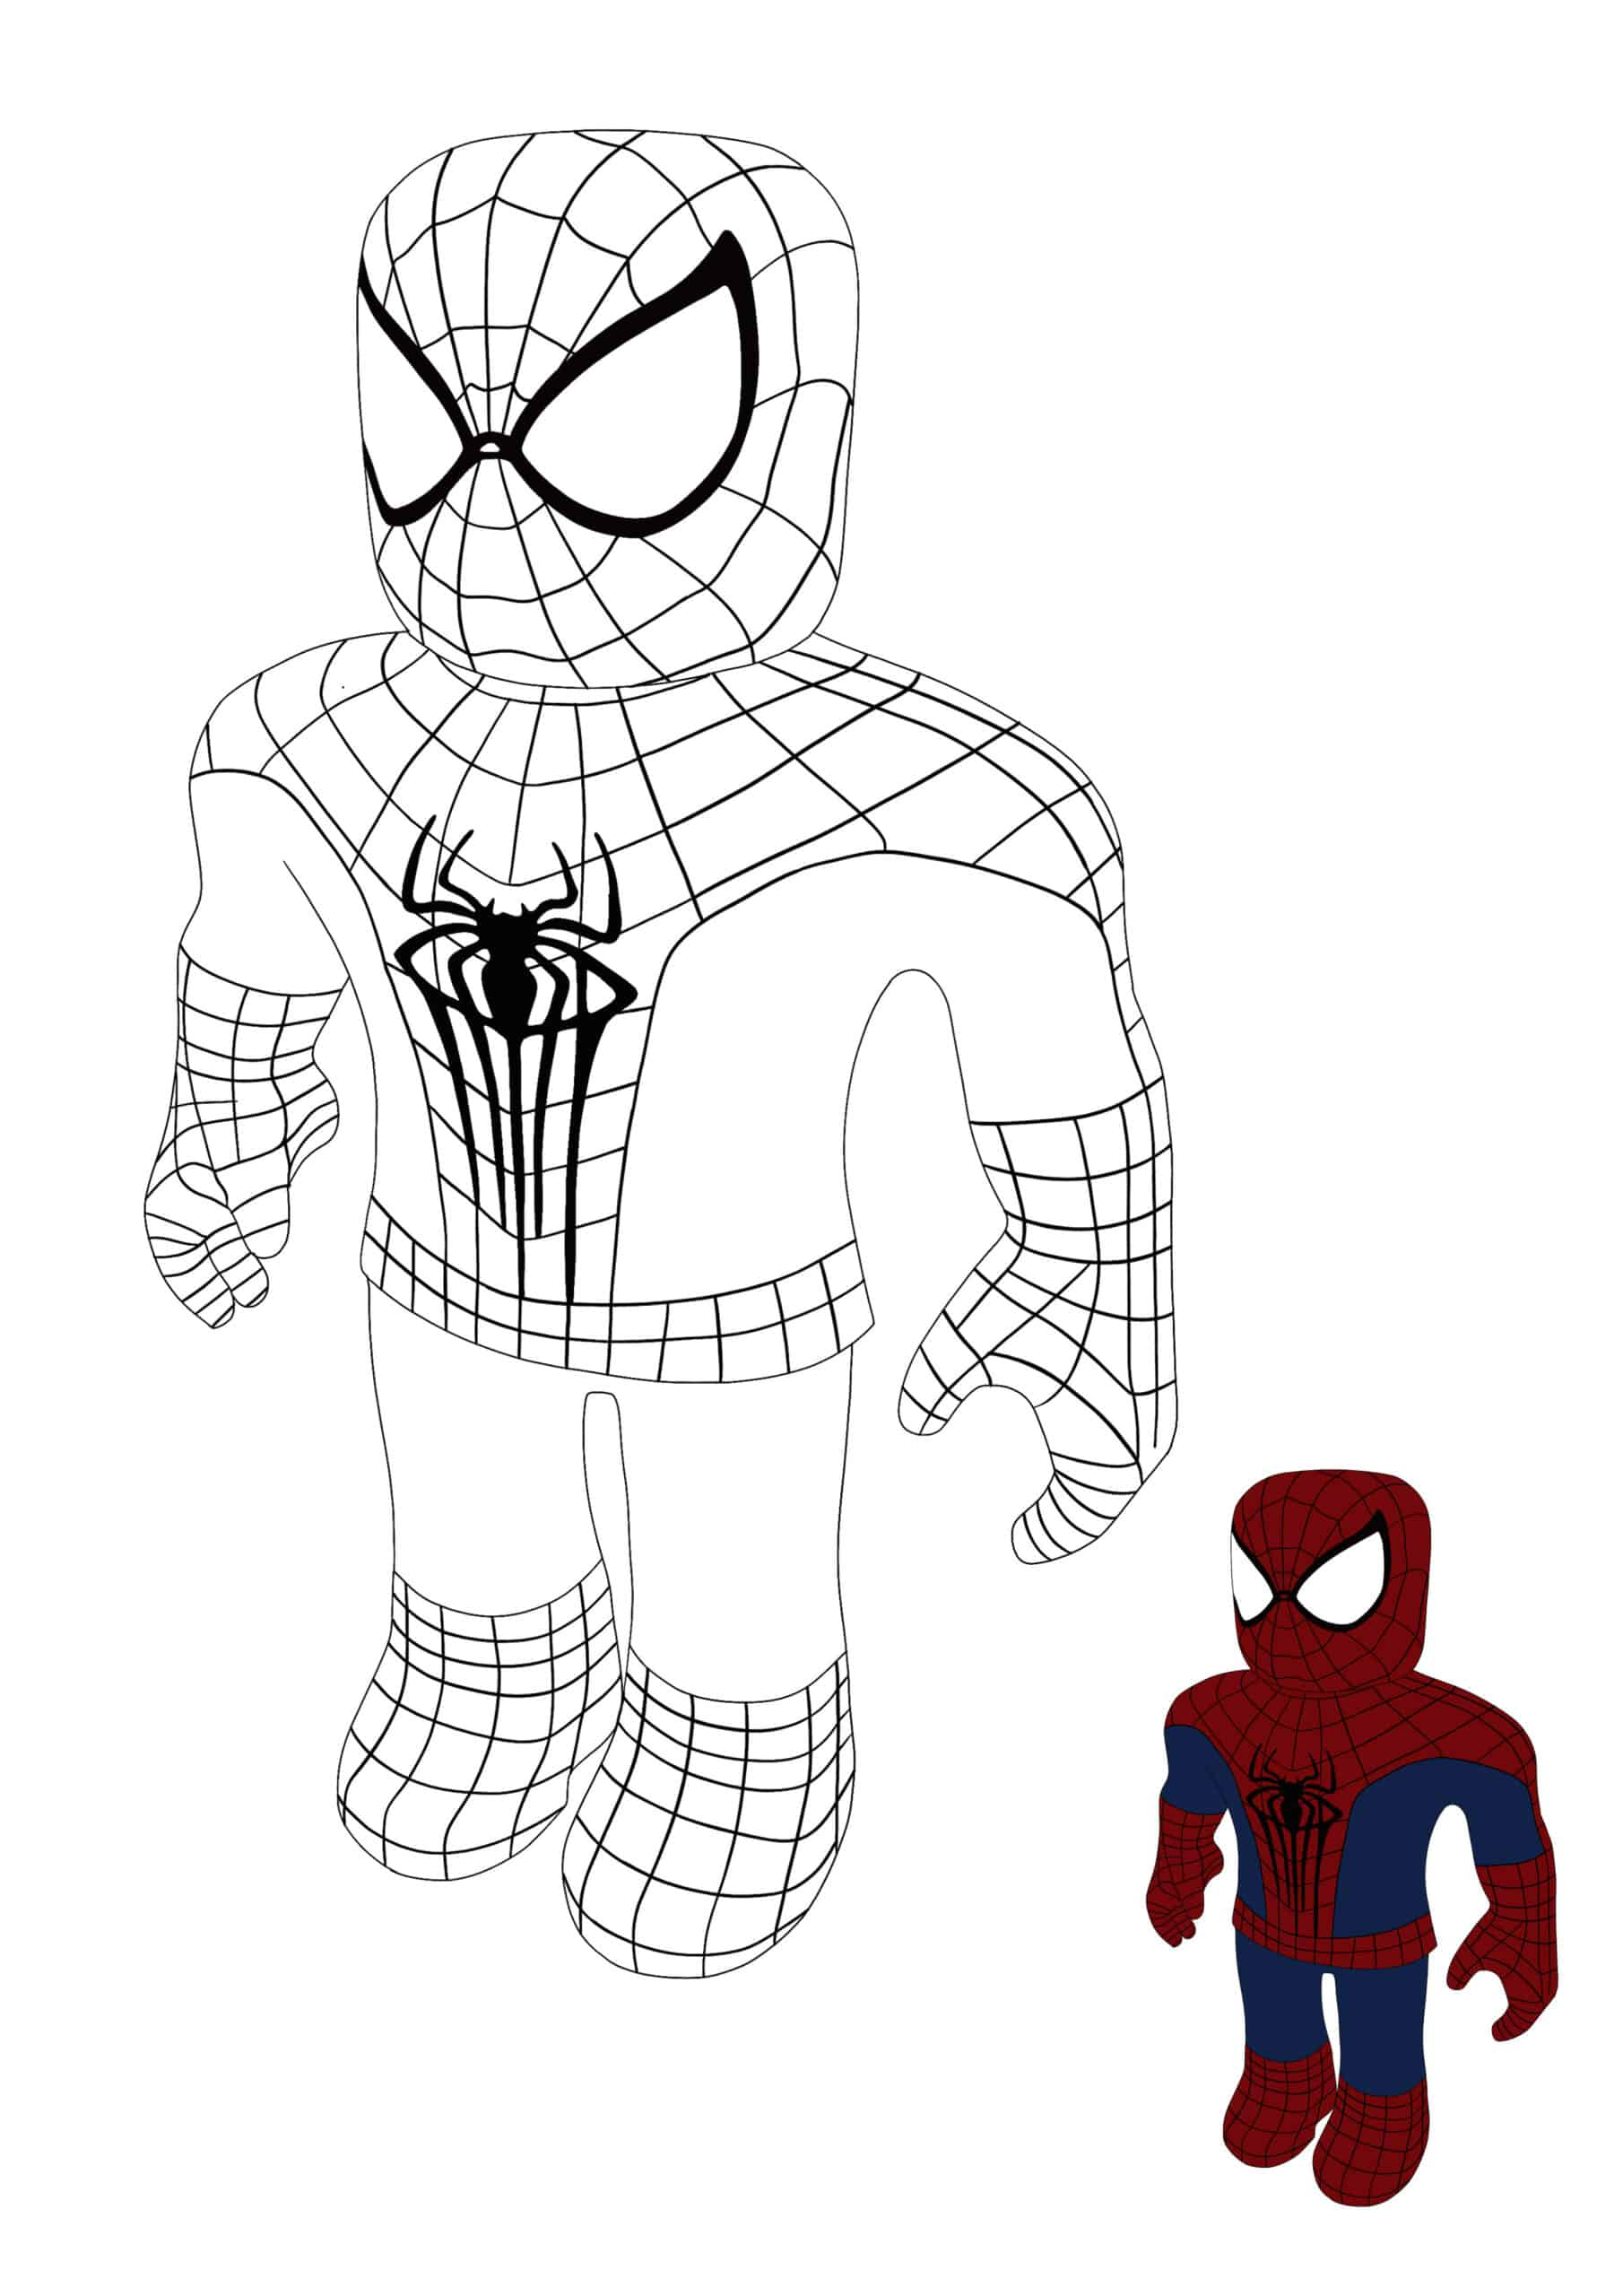 Roblox Spiderman coloring page for boys and girls